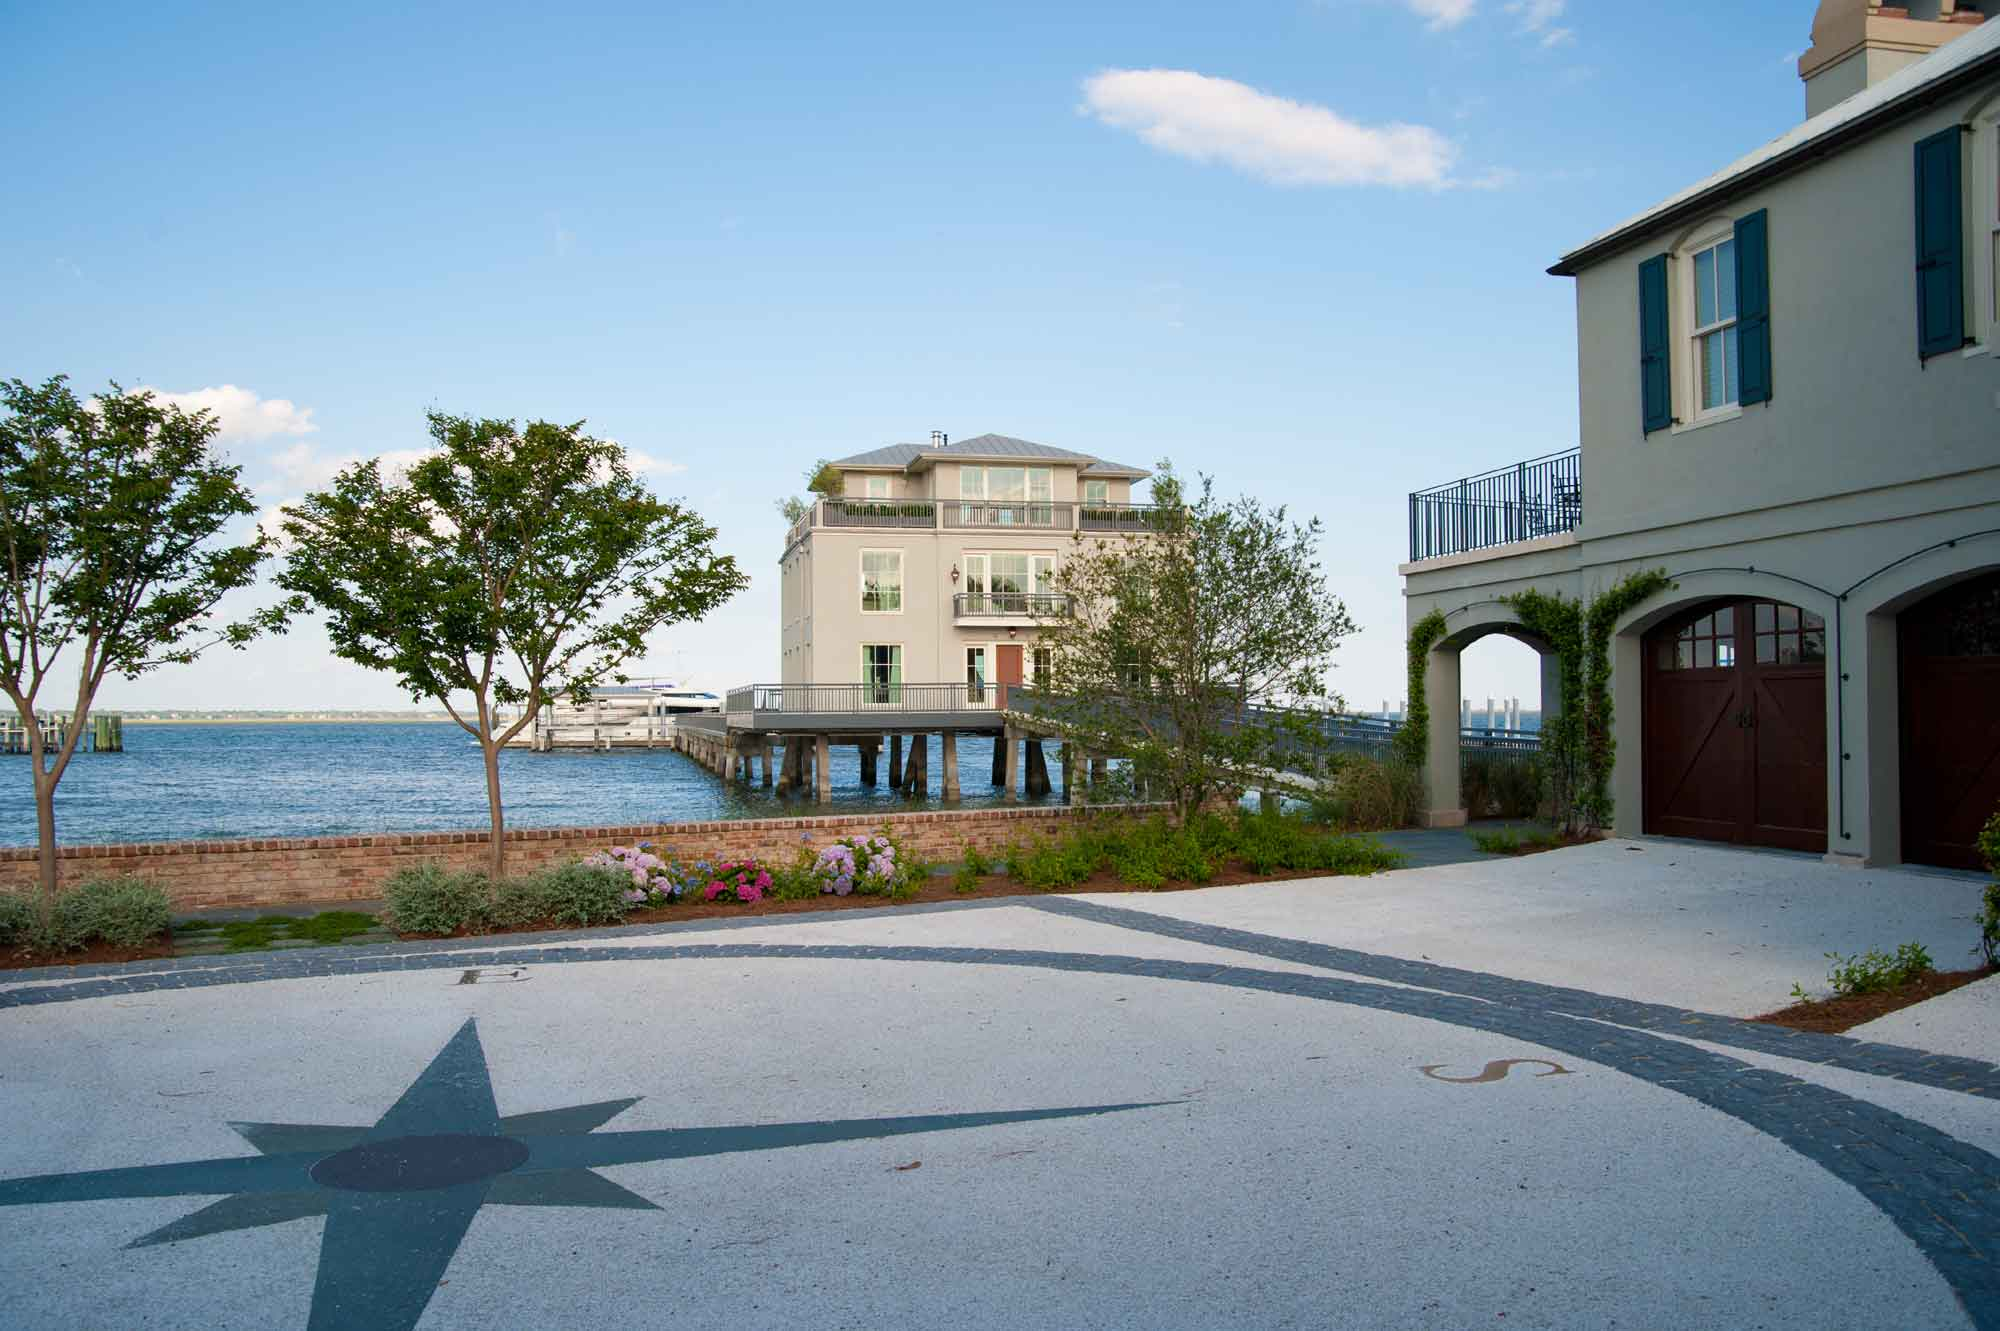 The Charleston Harbor Estate is the only private residence in downtown Charleston with its own boat dock. Wraparound decks facing the ocean are the ultimate venue to view the stars and indeed the total solar eclipse: Charleston, South Carolina, is the biggest city within the path of totality and the last to witness the awe-inspiring sight of day turned into night!